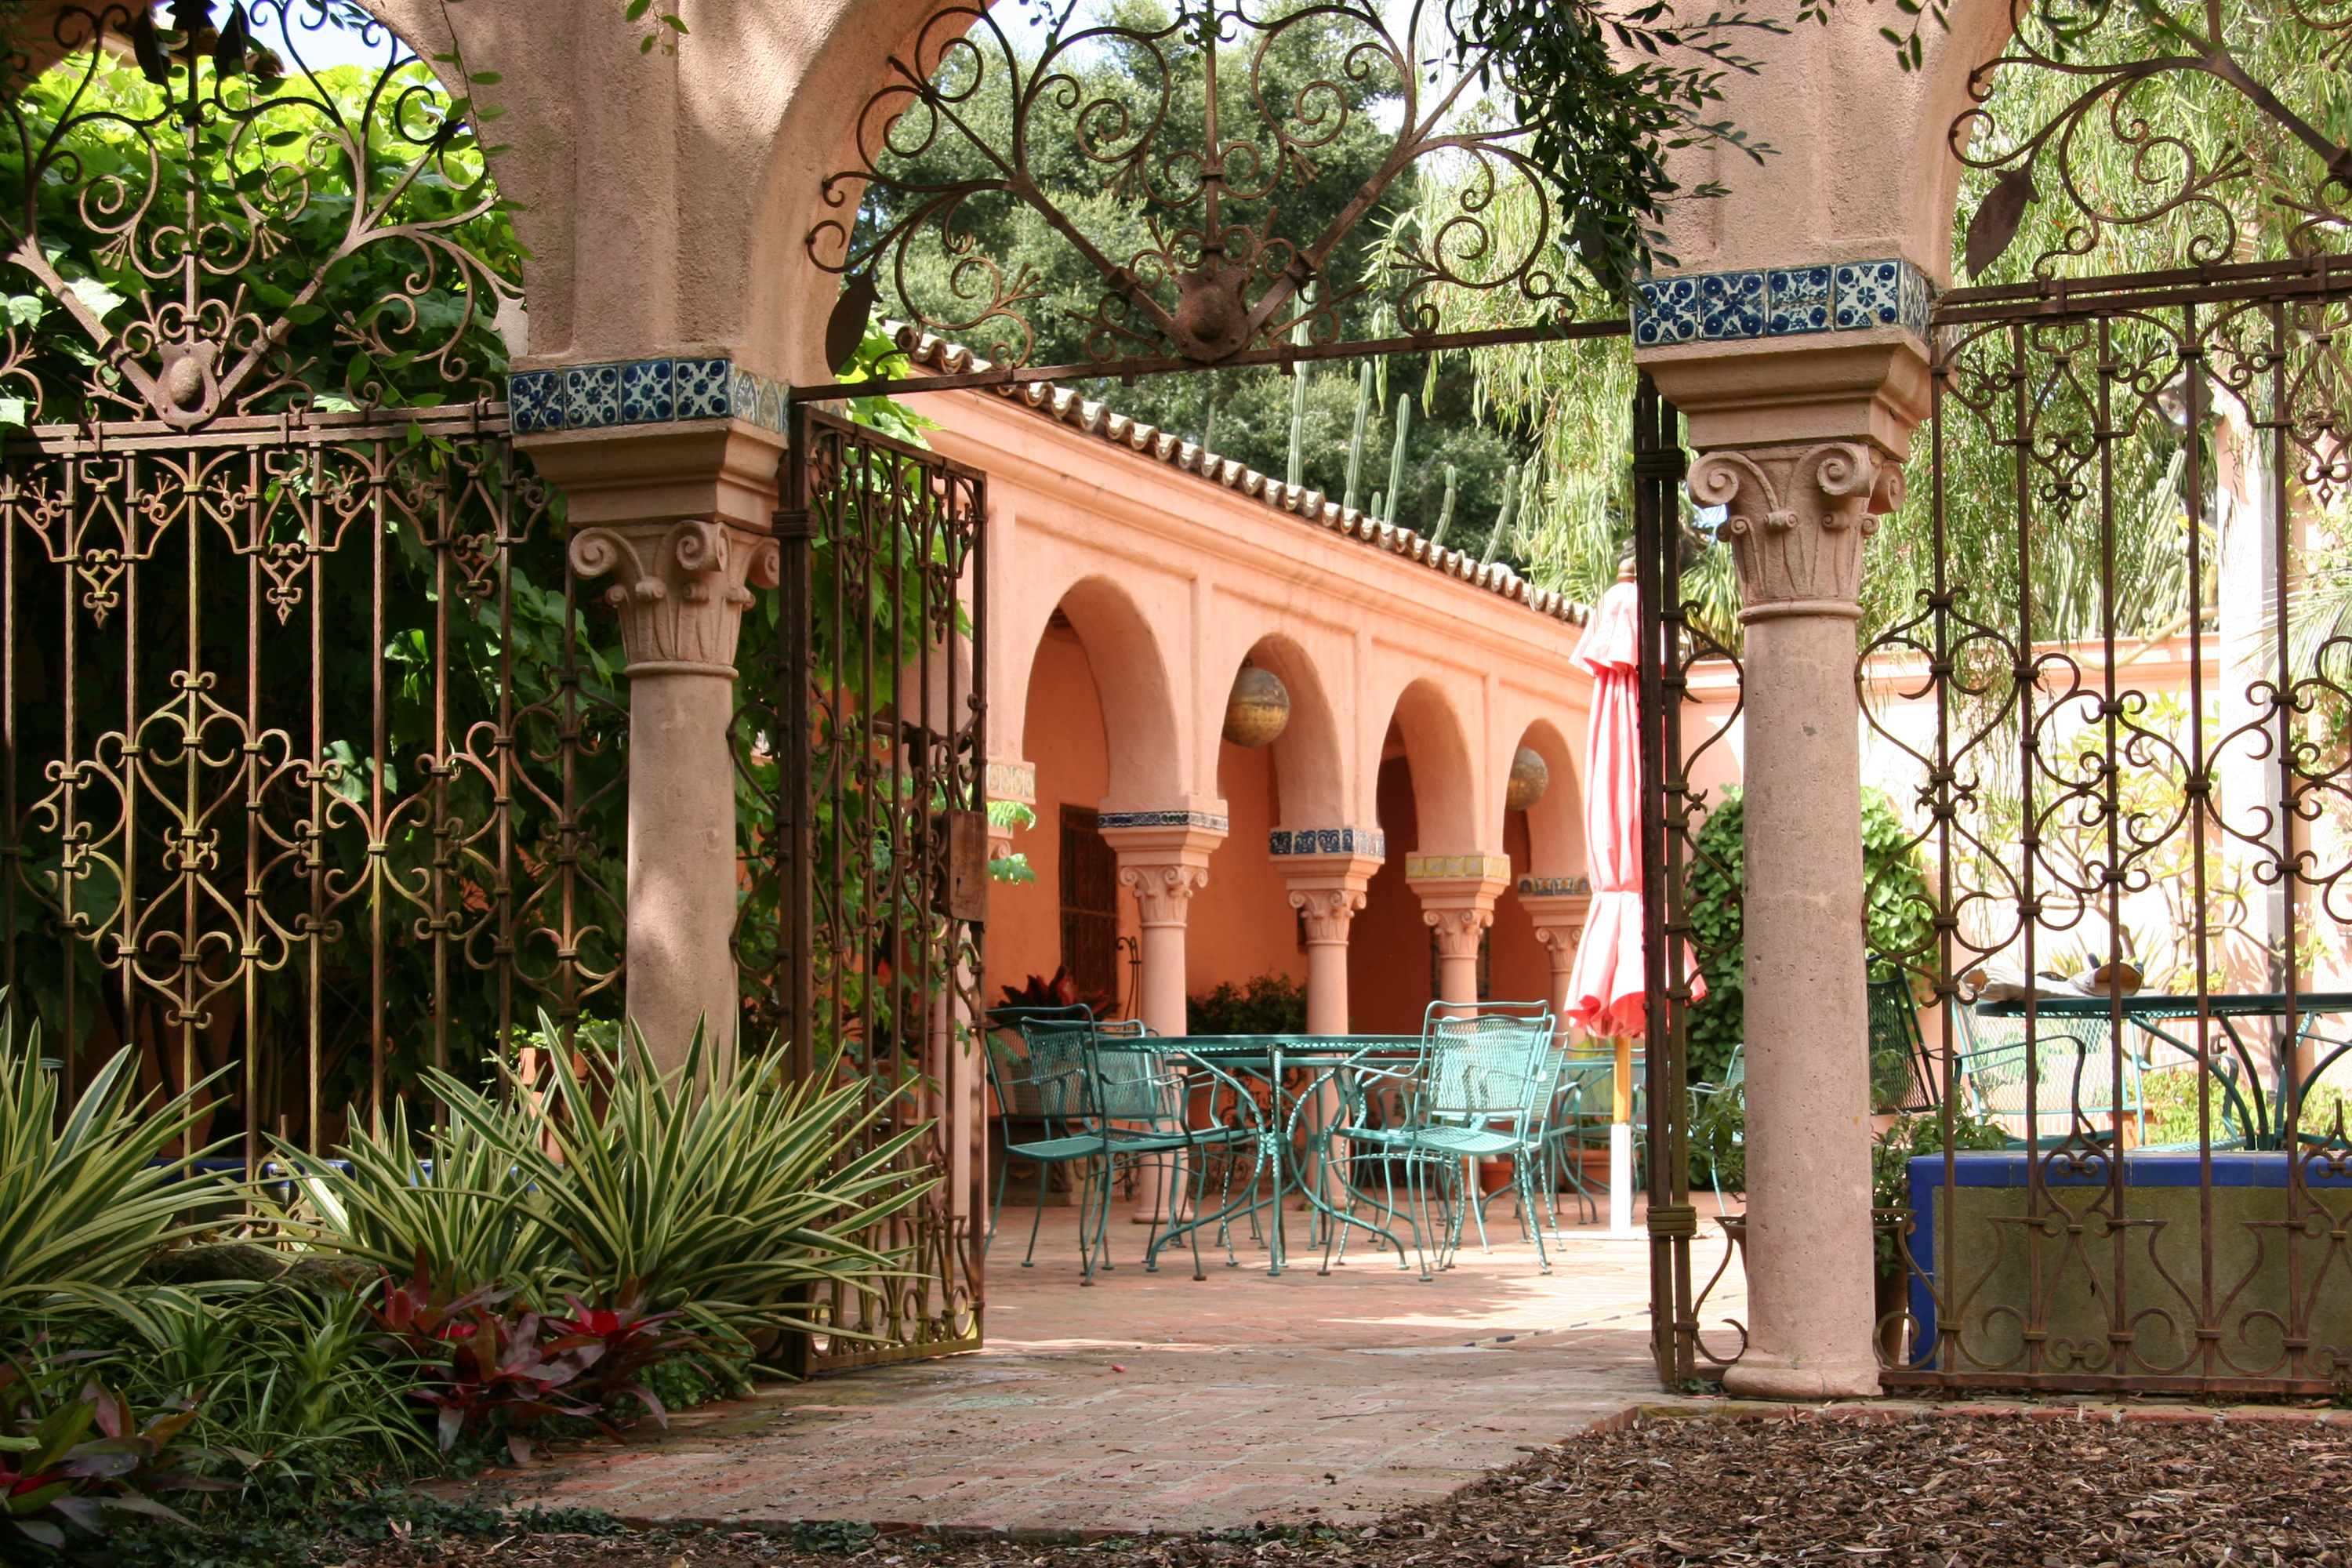 The 9 best things to do in Santa Barbara